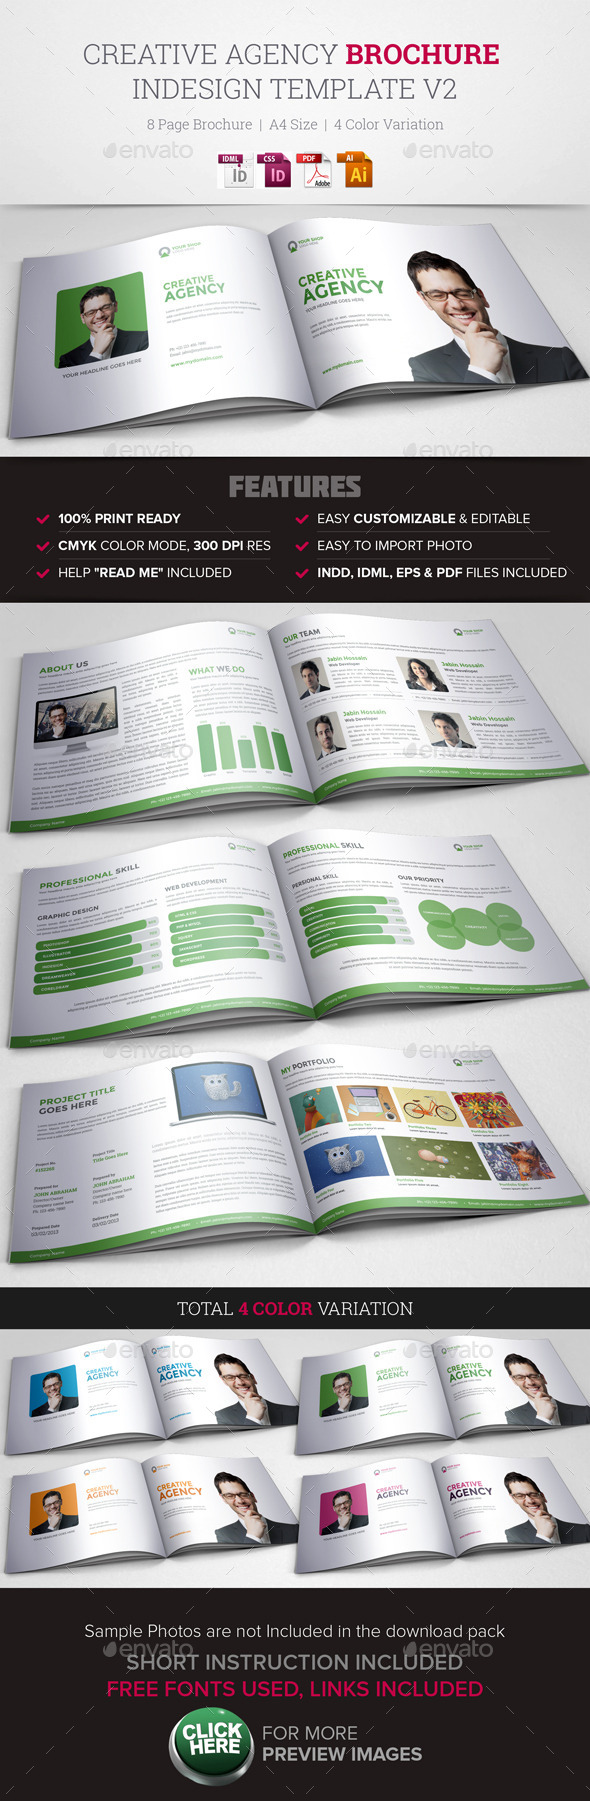 GraphicRiver Creative Agency Brochure InDesign Template v2 11473185